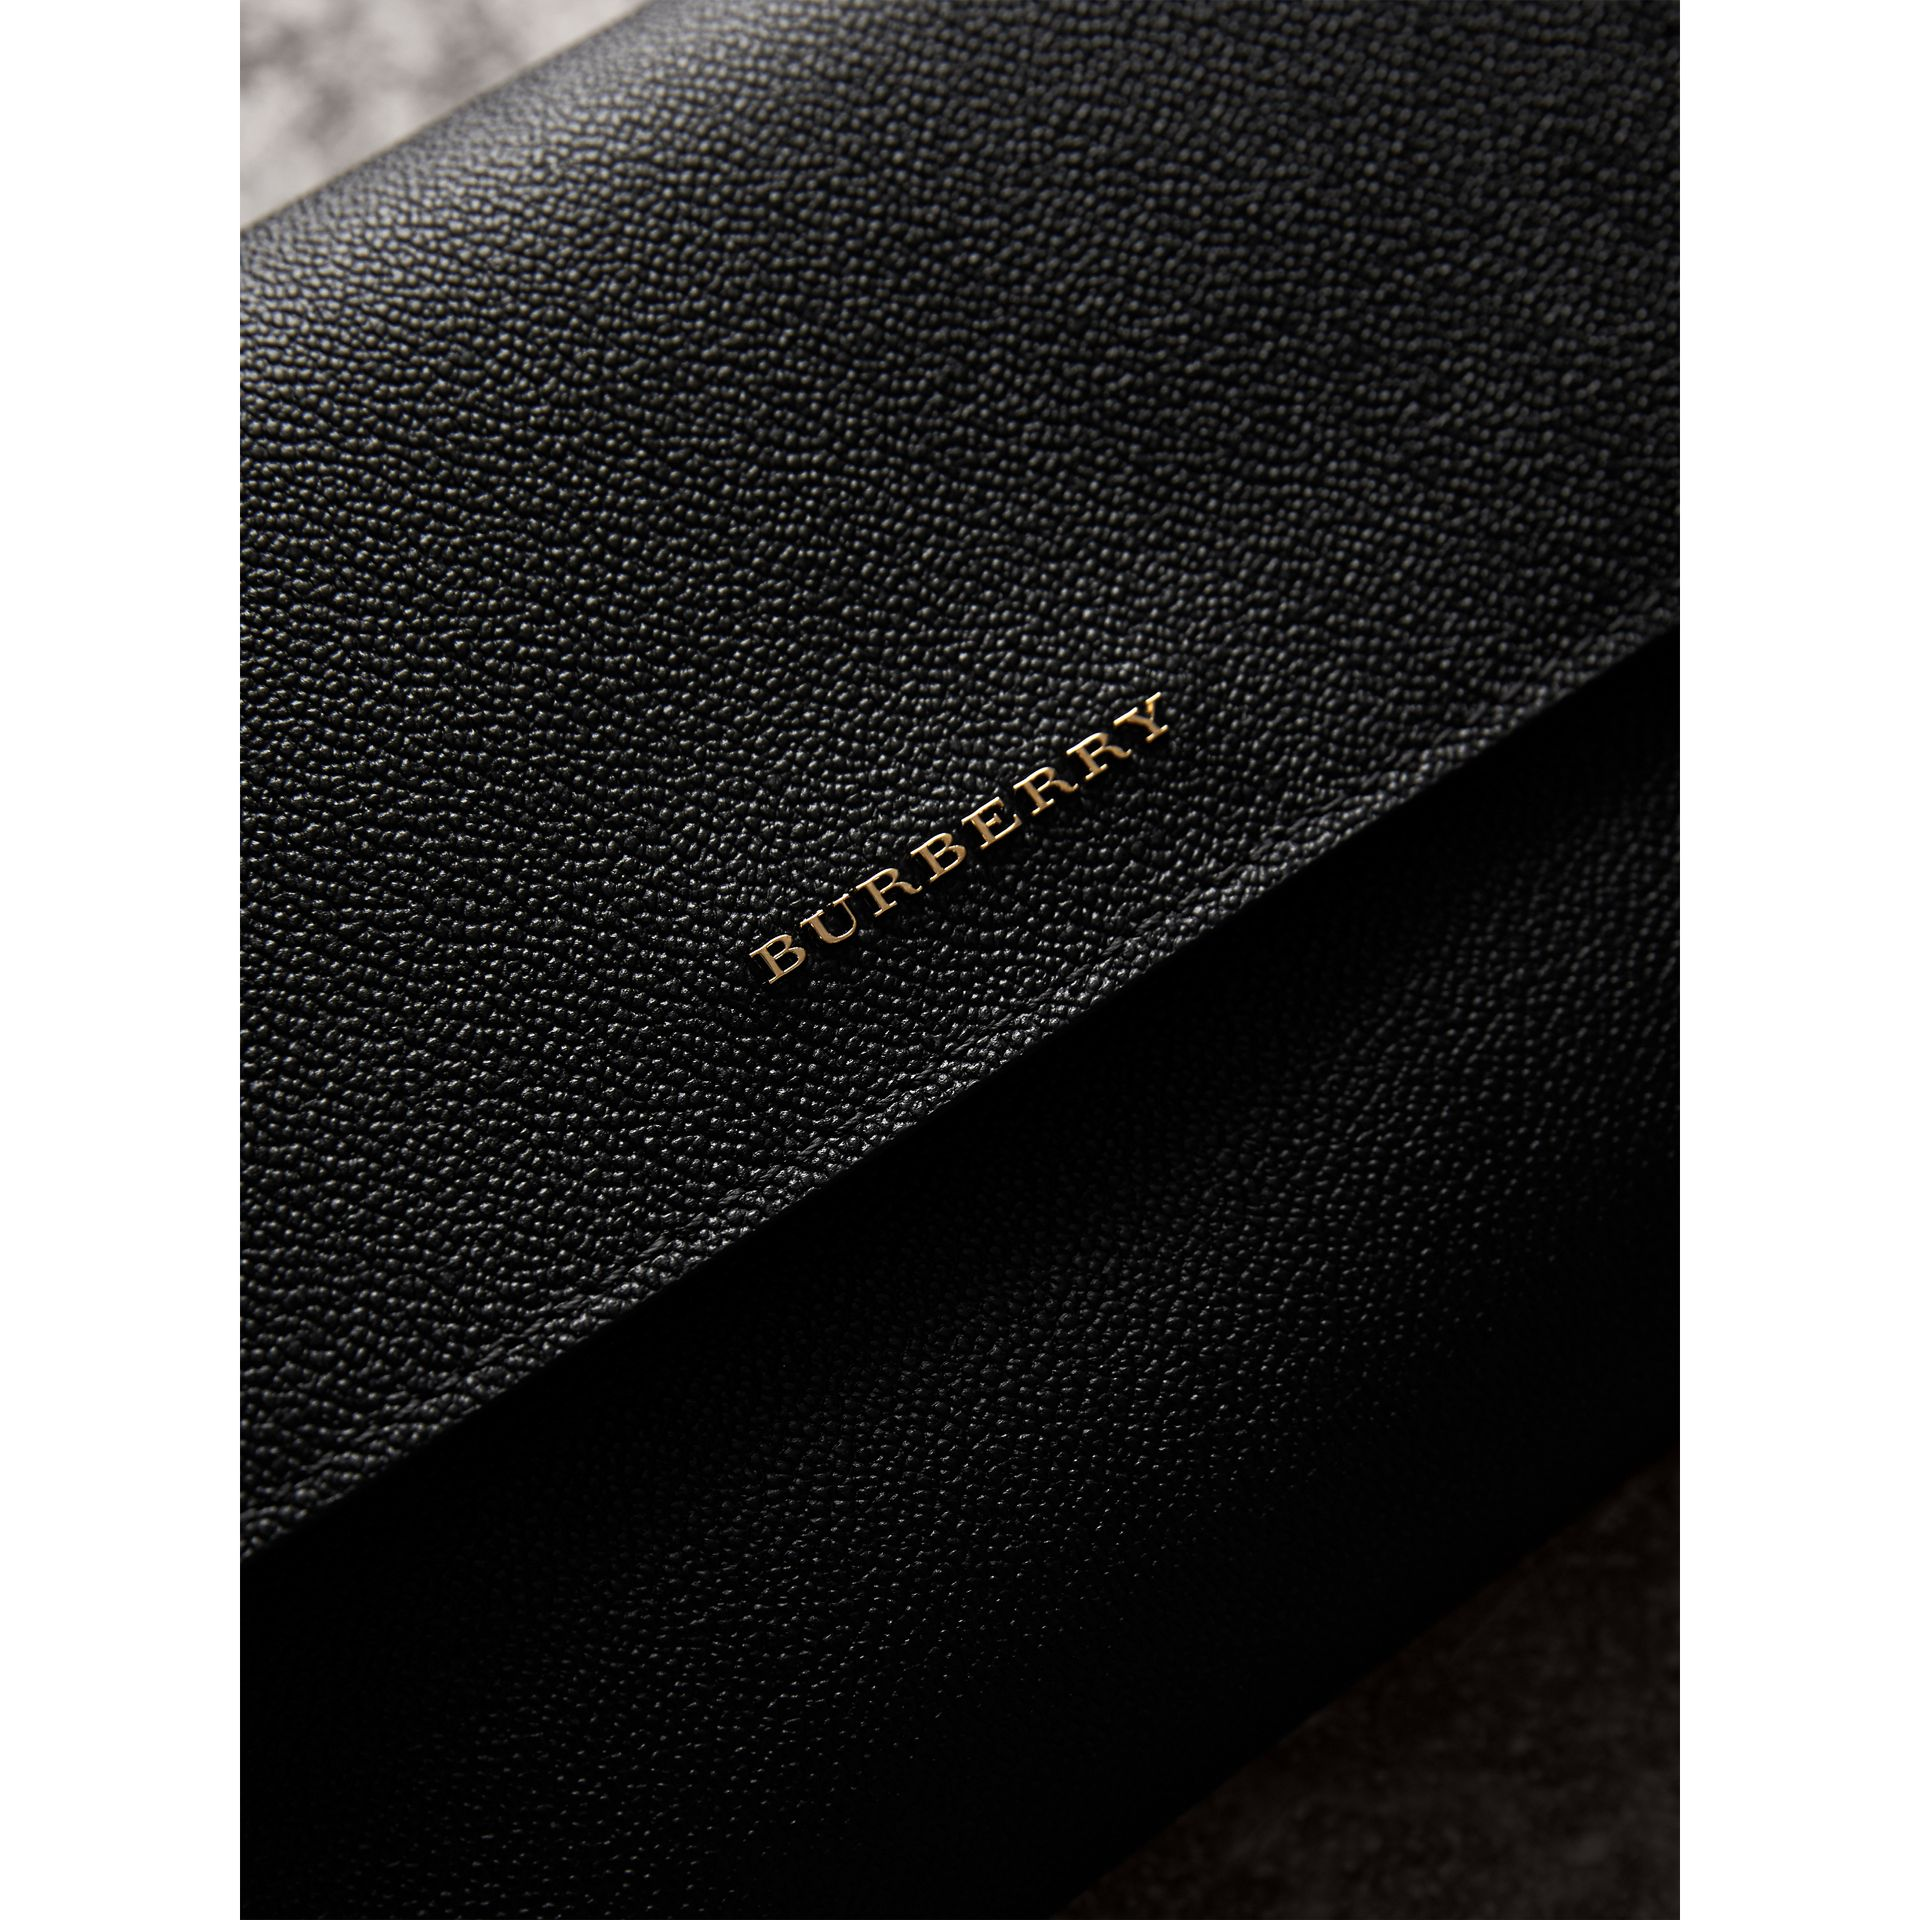 Grainy Leather Crossbody Bag in Black - Women | Burberry - gallery image 2